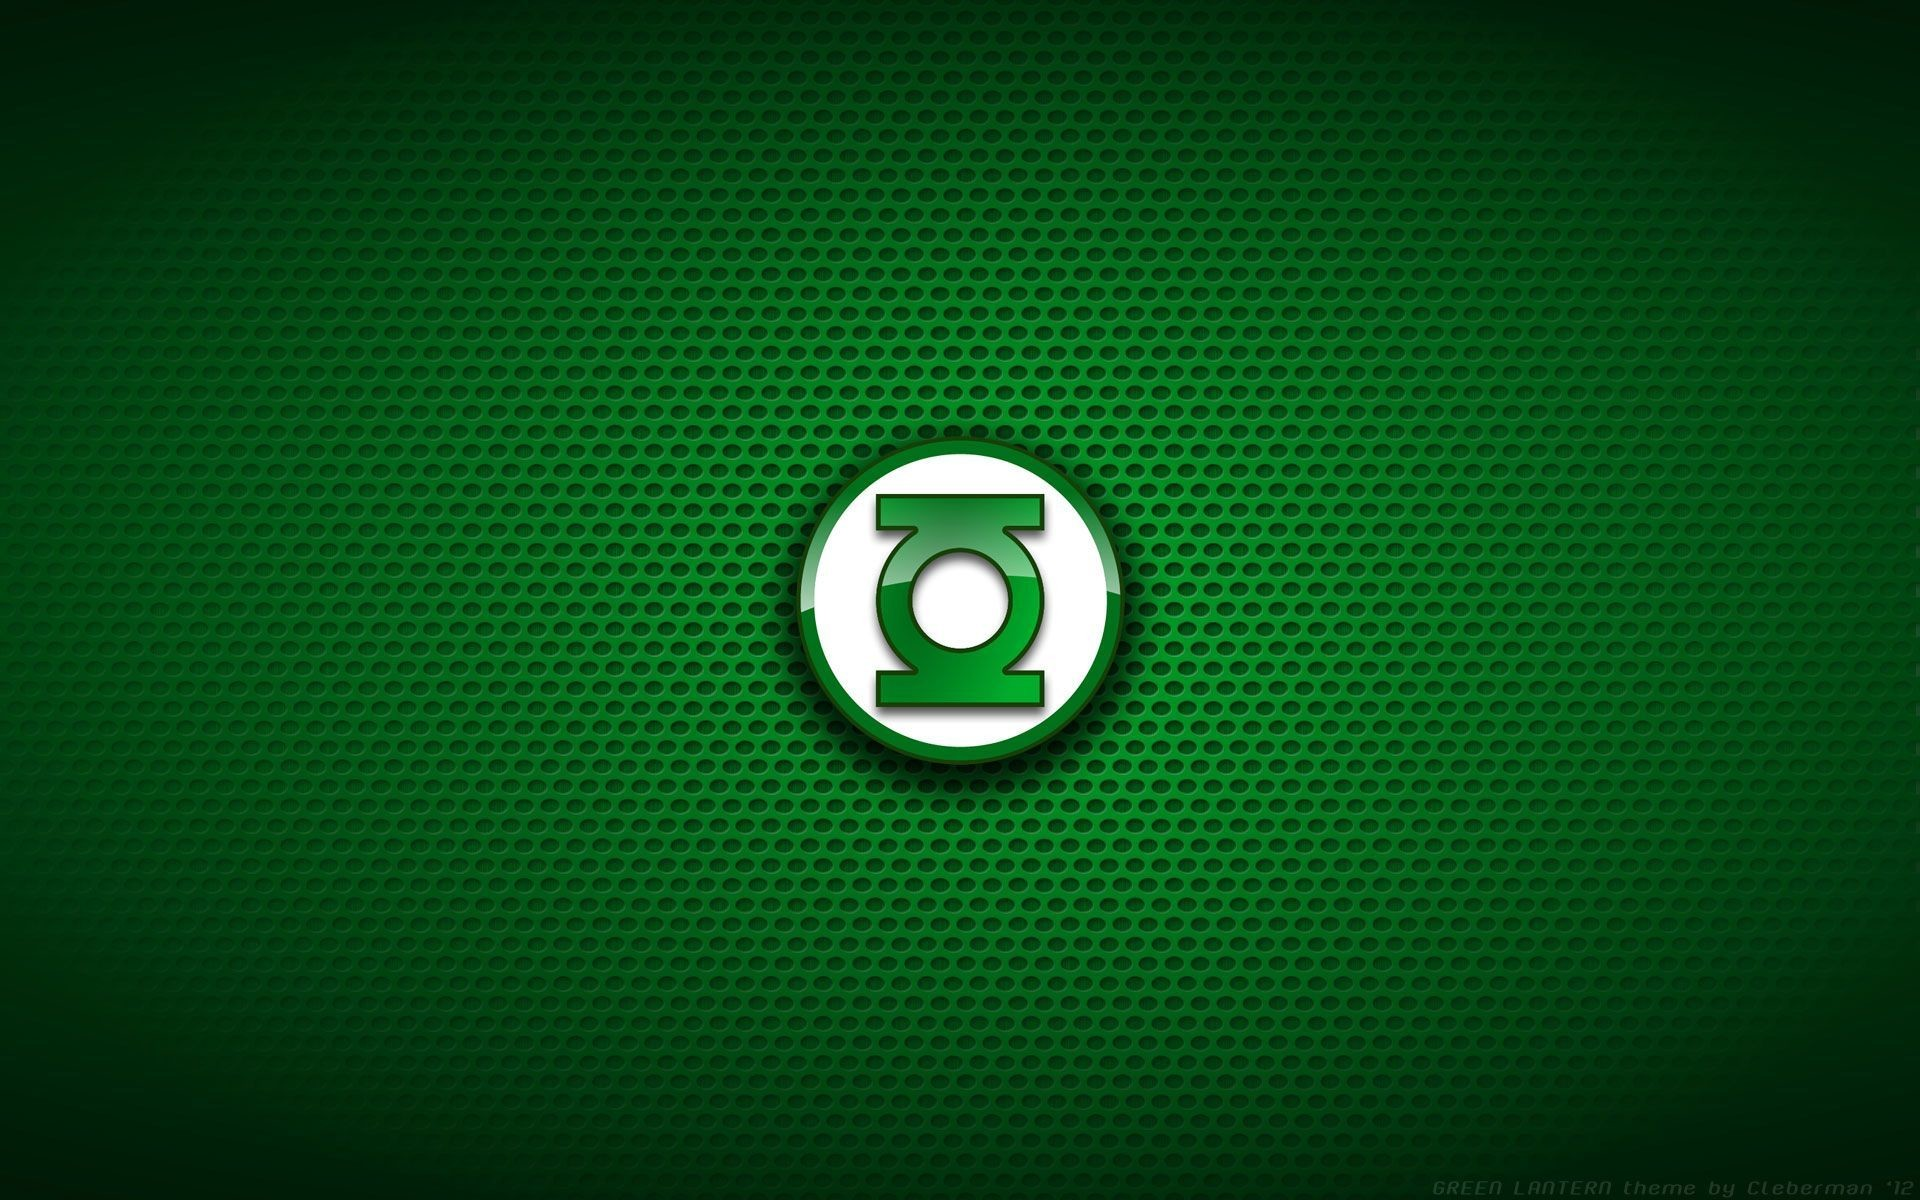 red lantern symbol wallpaper (62+ images)